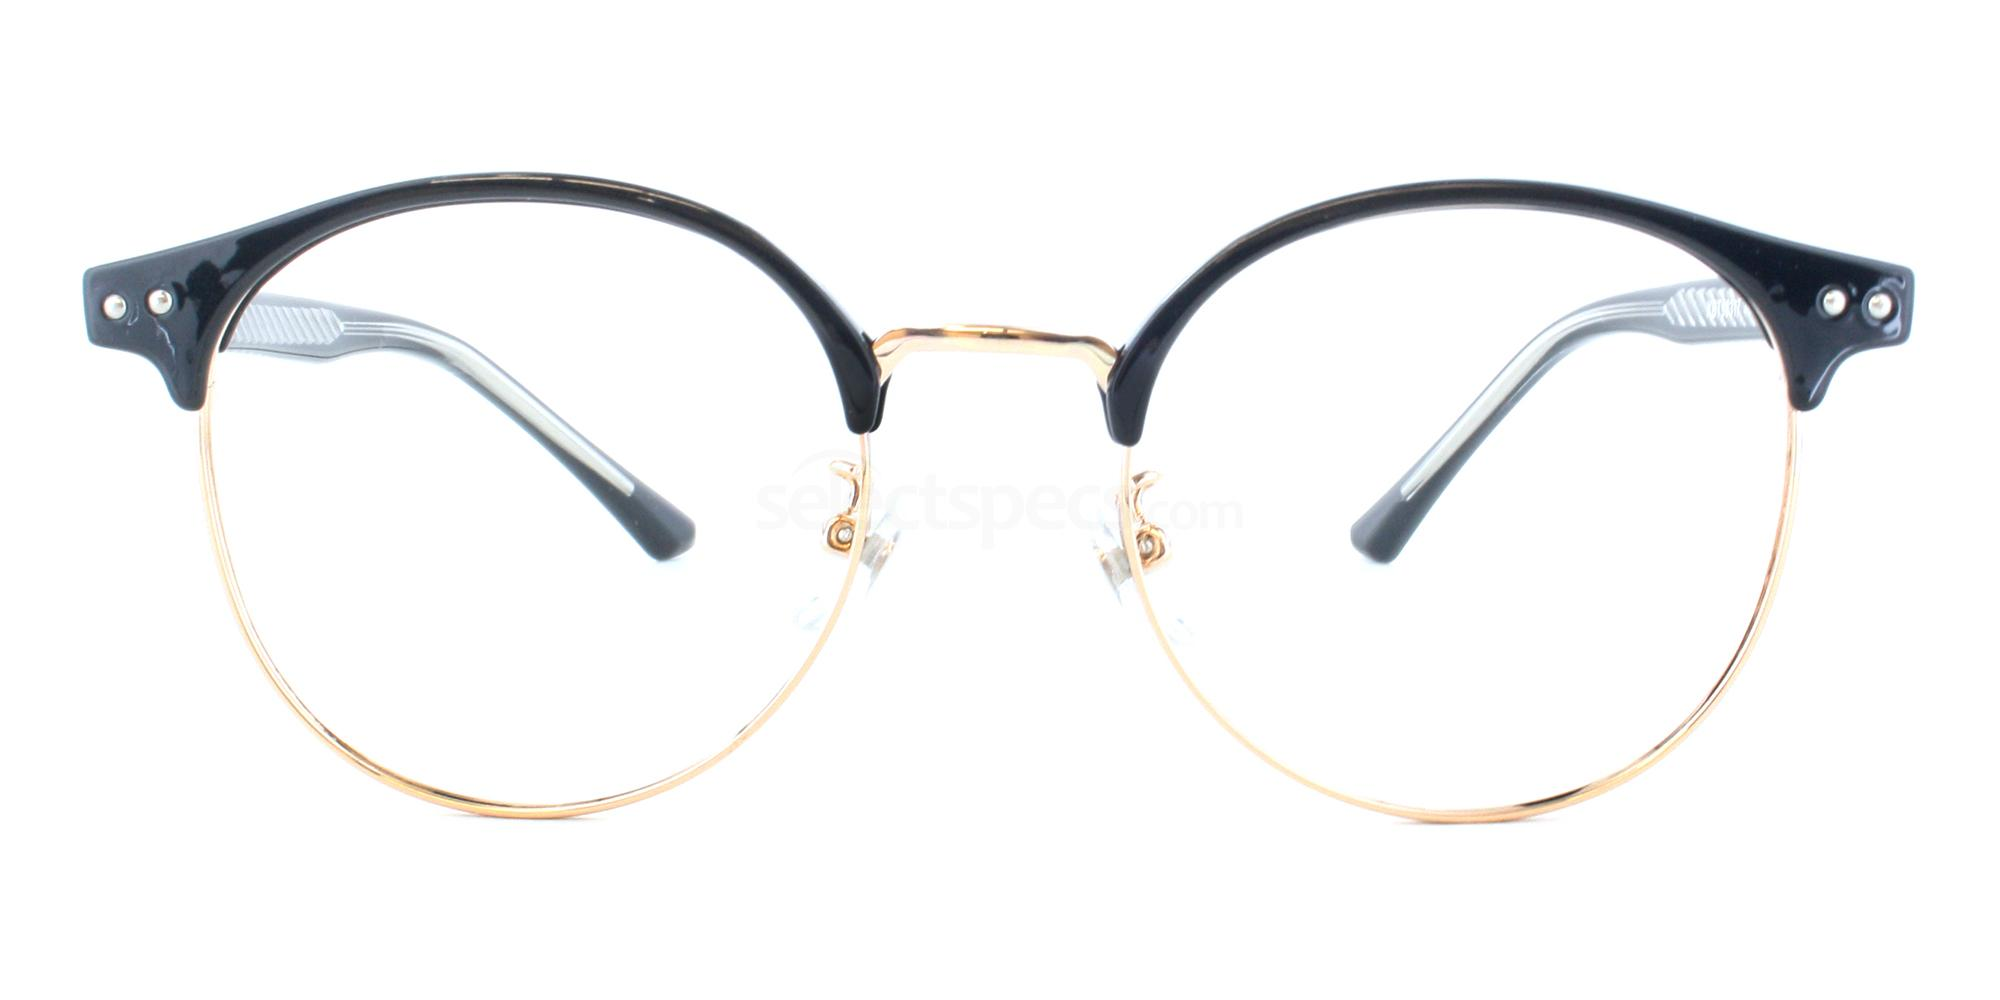 C1 KBT98317 Glasses, Infinity